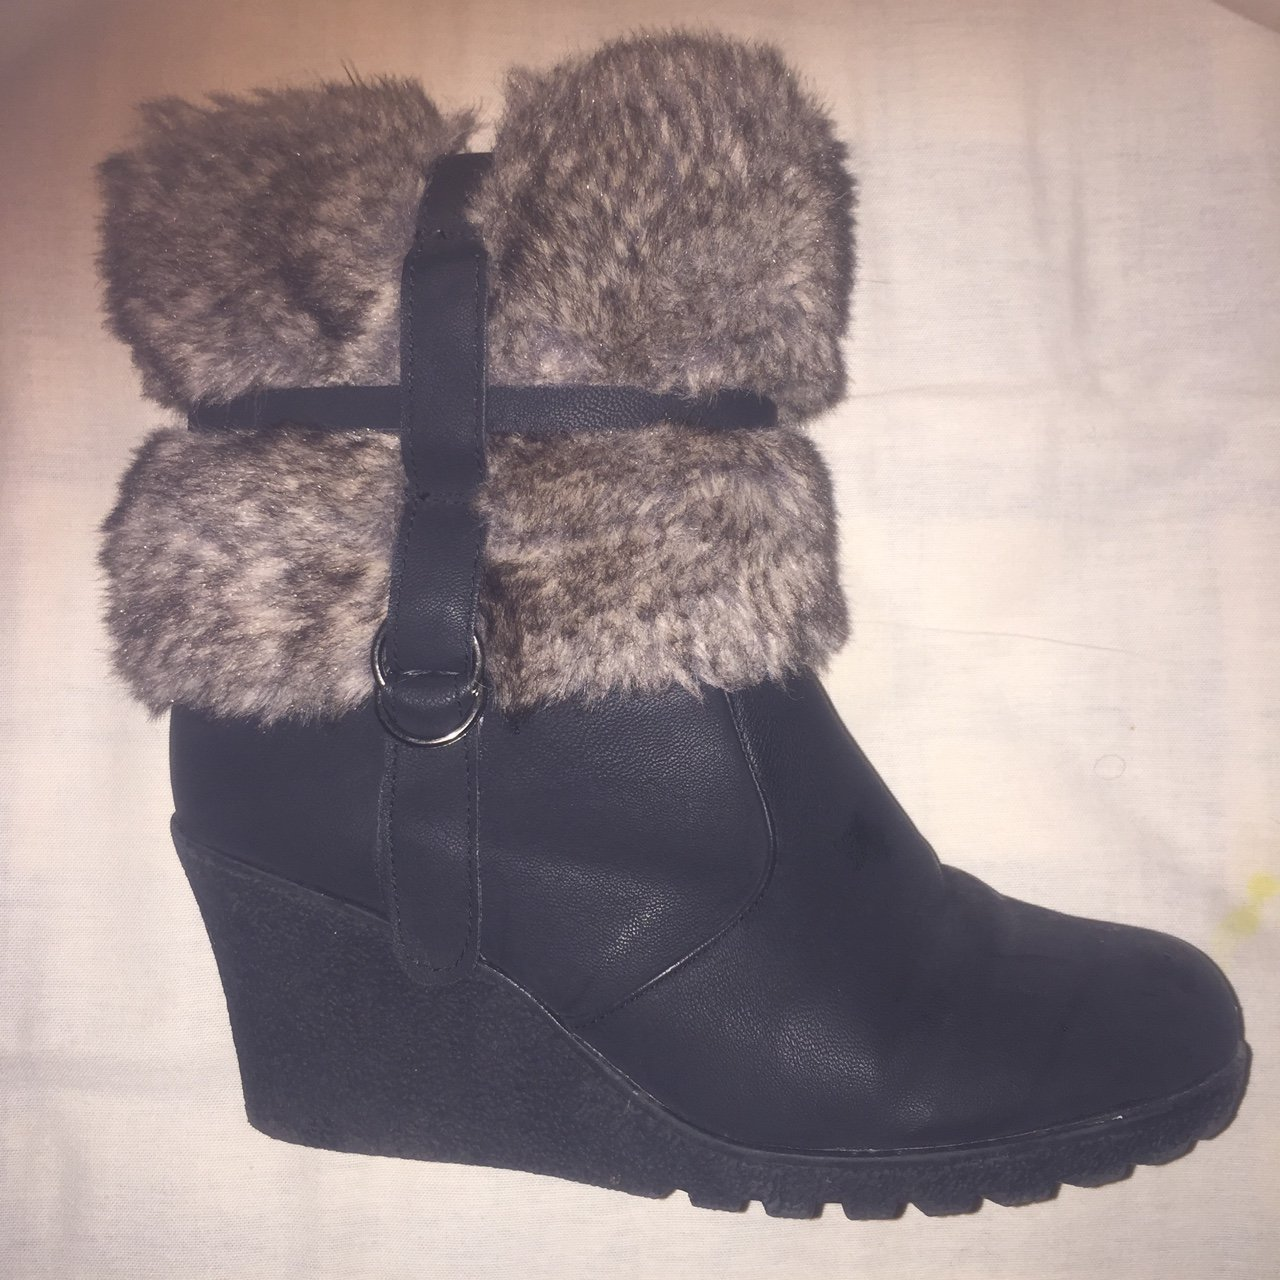 8dae4e6ed866 Black wedge heel boots with fur in size 5. Have been worn a - Depop